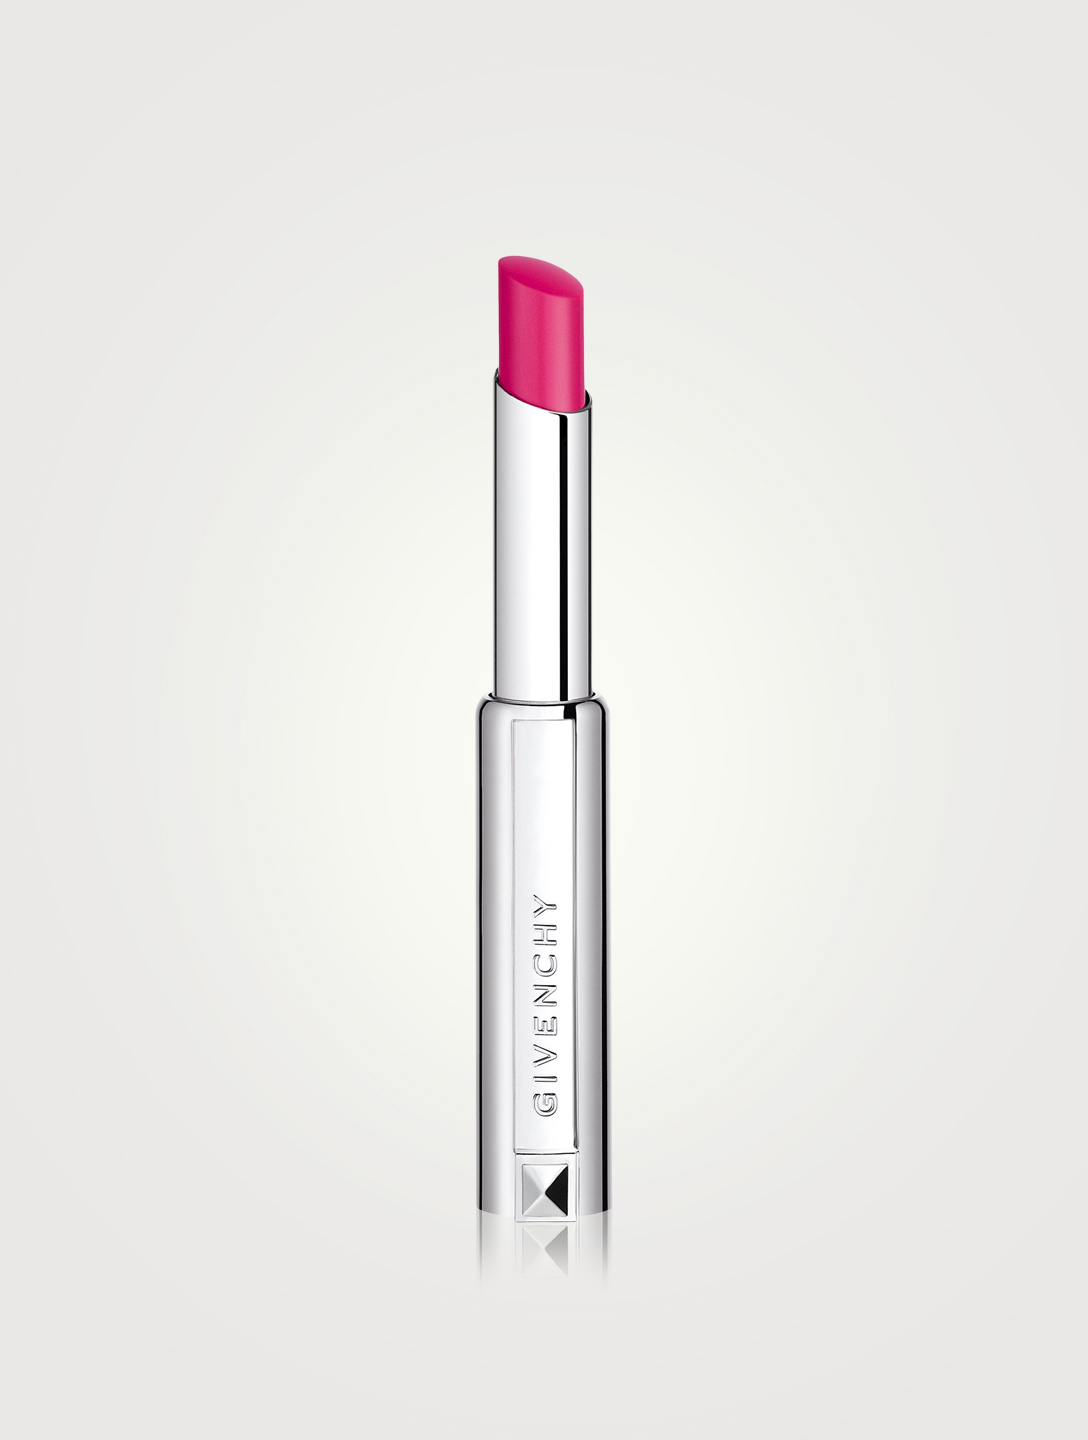 GIVENCHY Le Rose Perfecto Beauty Pink